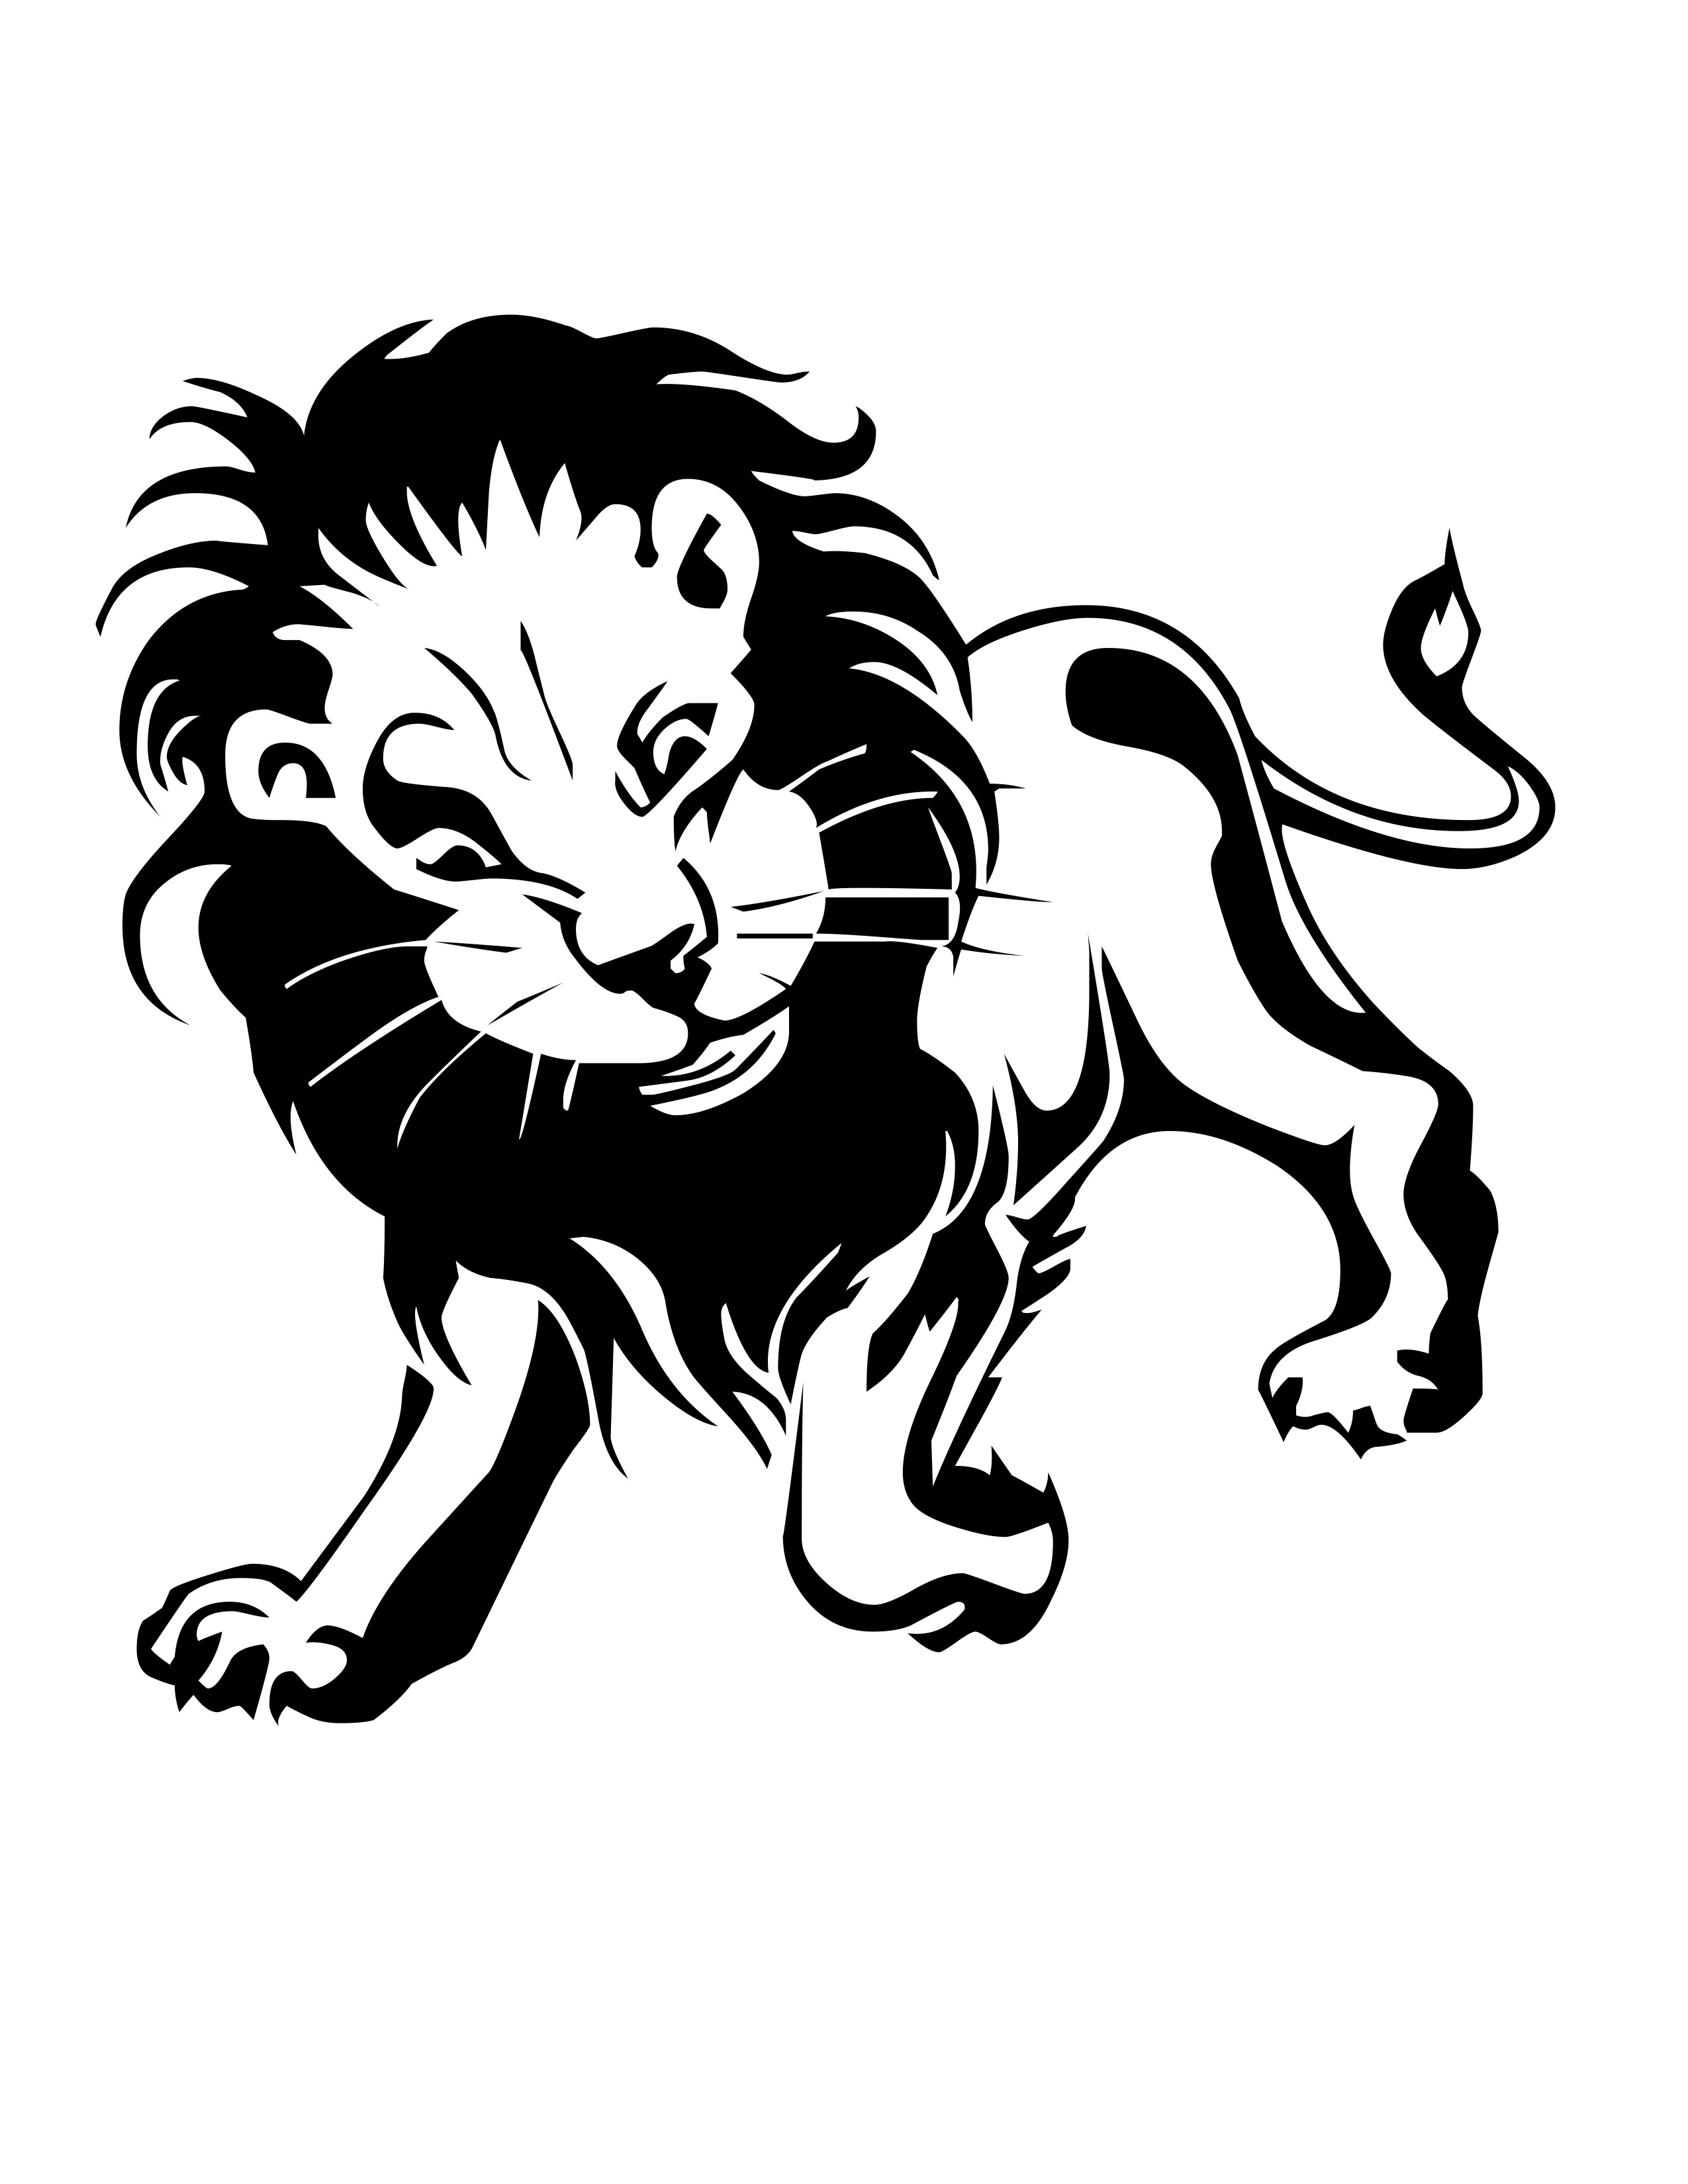 Lion head coloring pages - Source Www About Lions Com Report Lion Head Coloring Pages